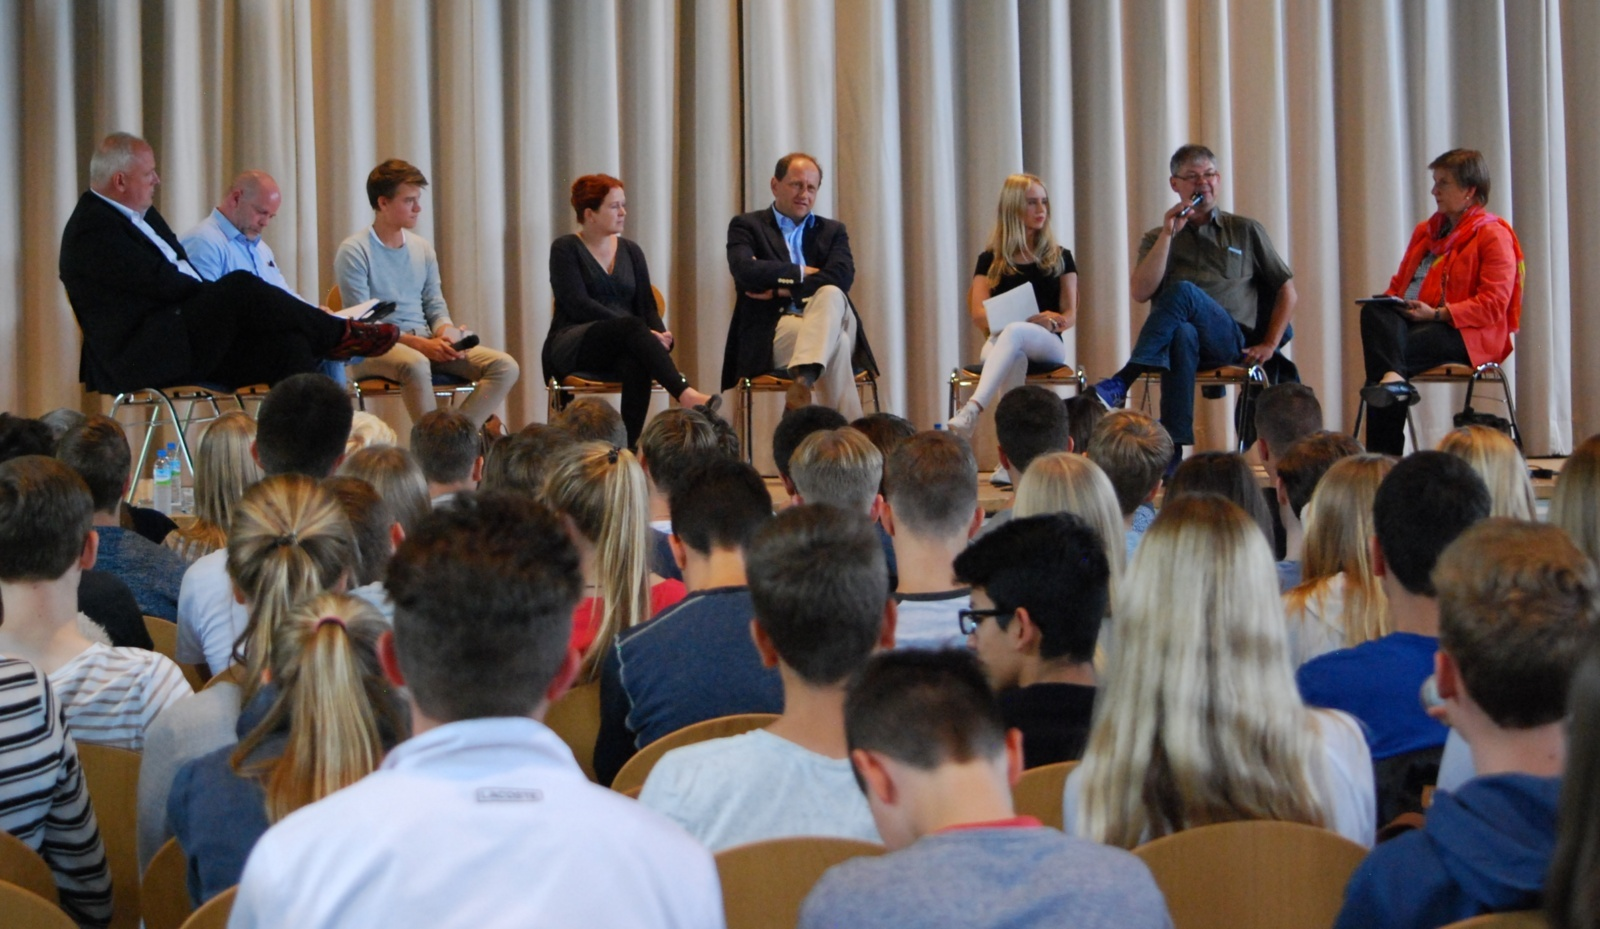 SOWI_2017_podiumsdiskussion_HP (c) KFG